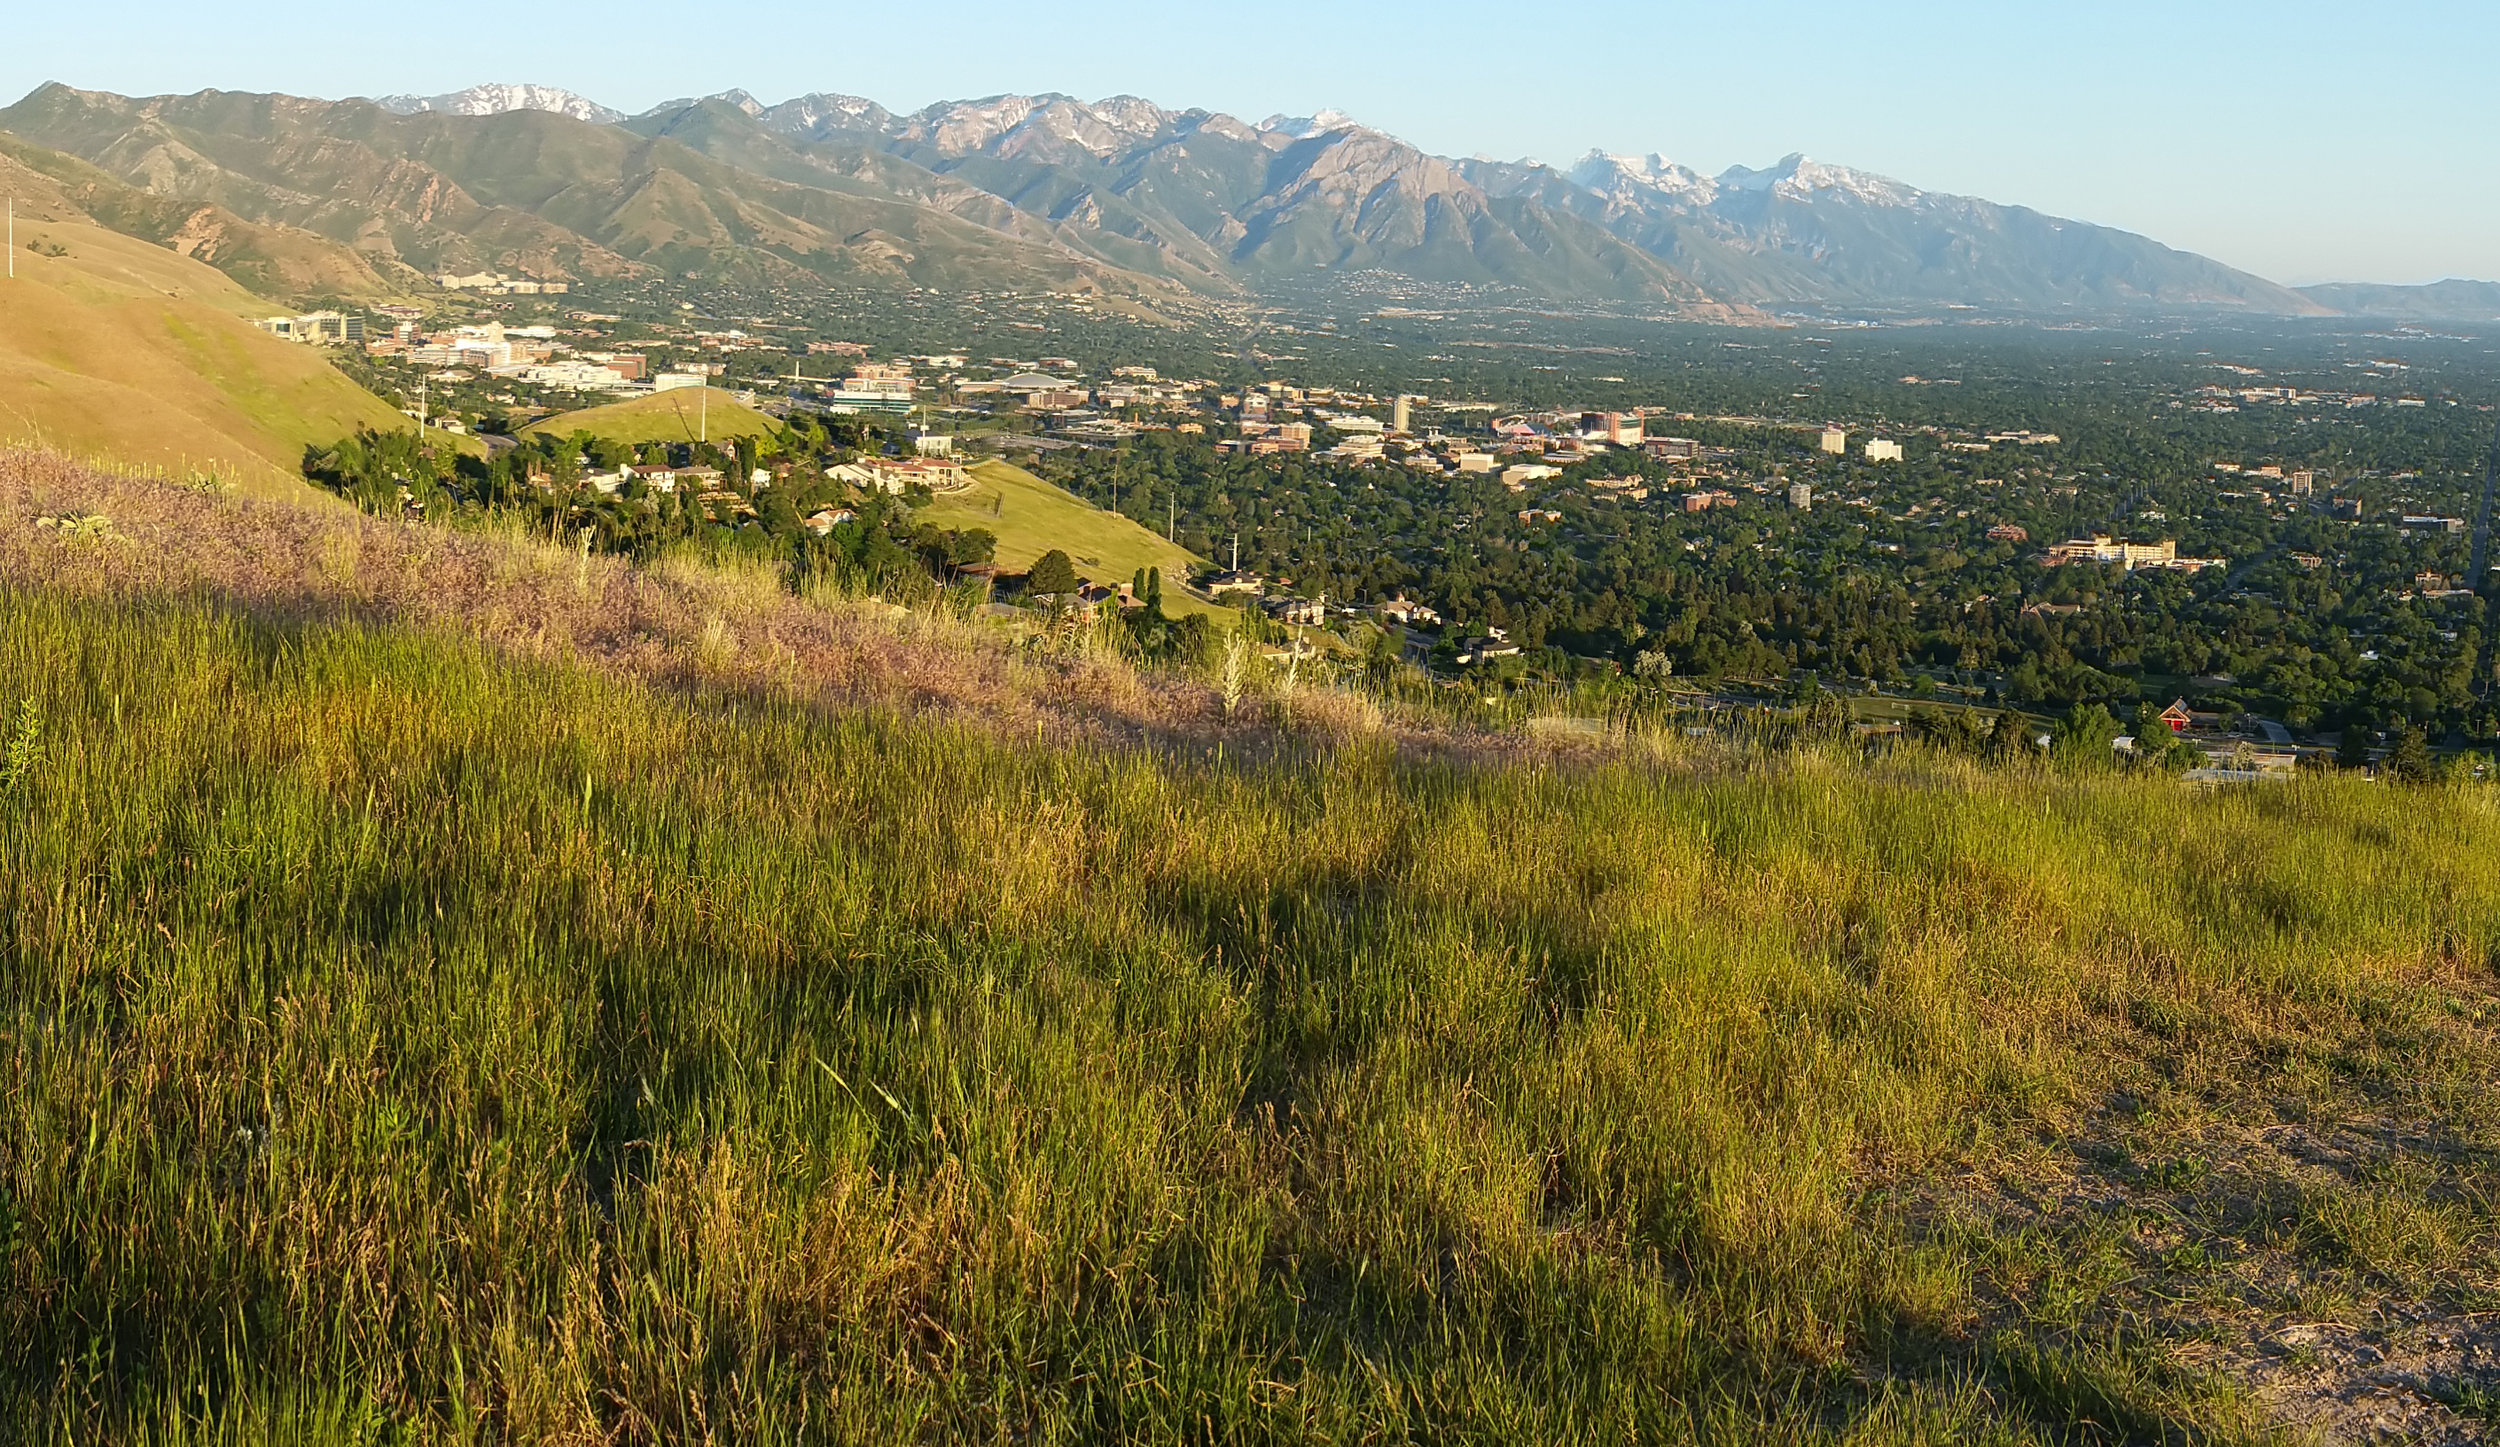 Township + Range is proudly based in                             Salt Lake City, Utah. - With our clients and colleagues, we work toward asustainable,vital, and equitable American West -its cities, towns, and open spaces.